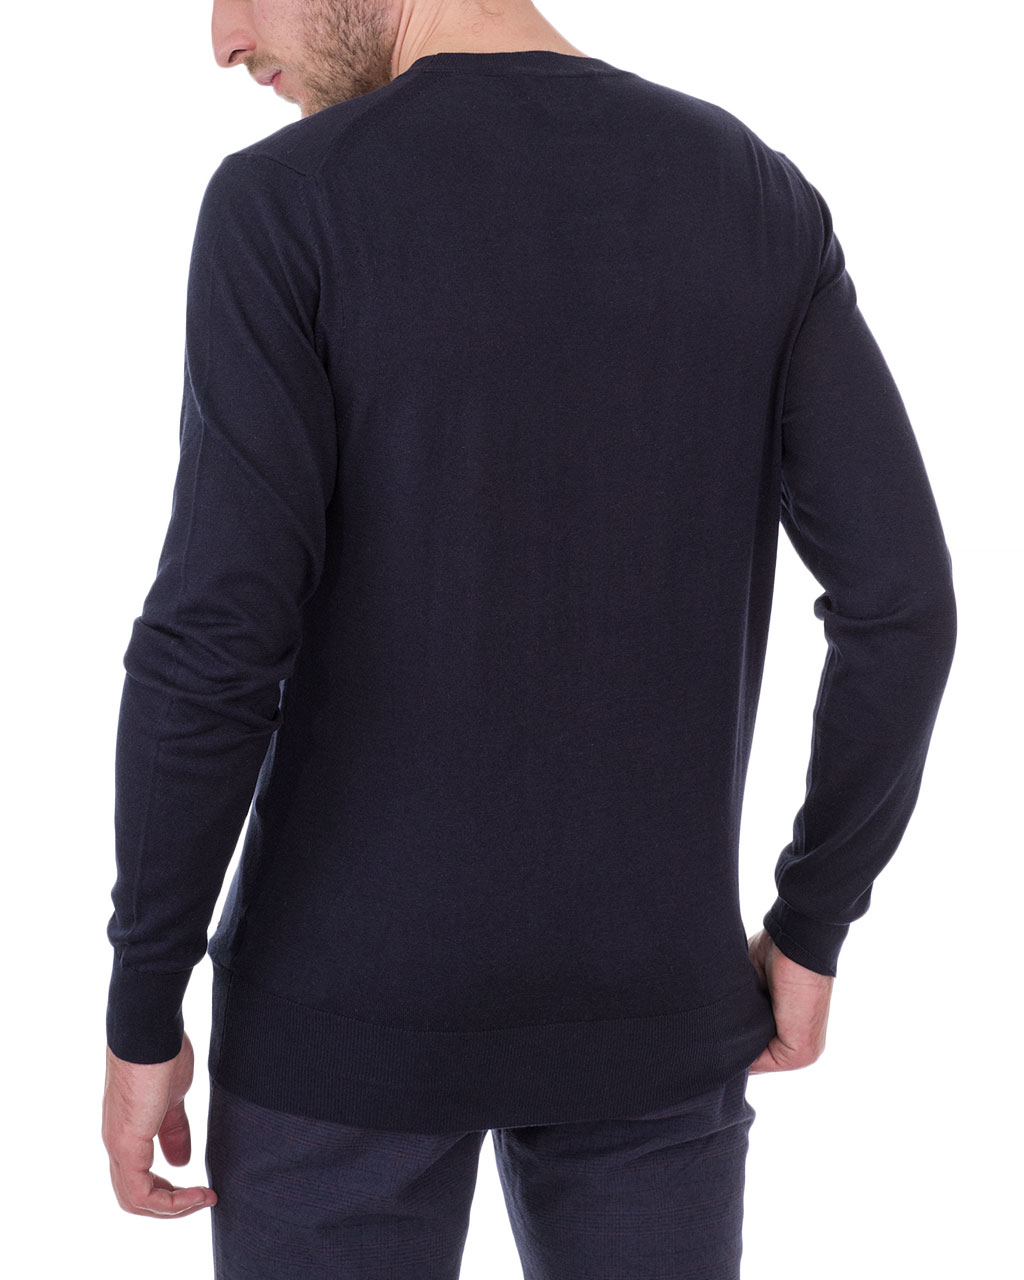 Men's jumper 1860-319/19-20 (6)